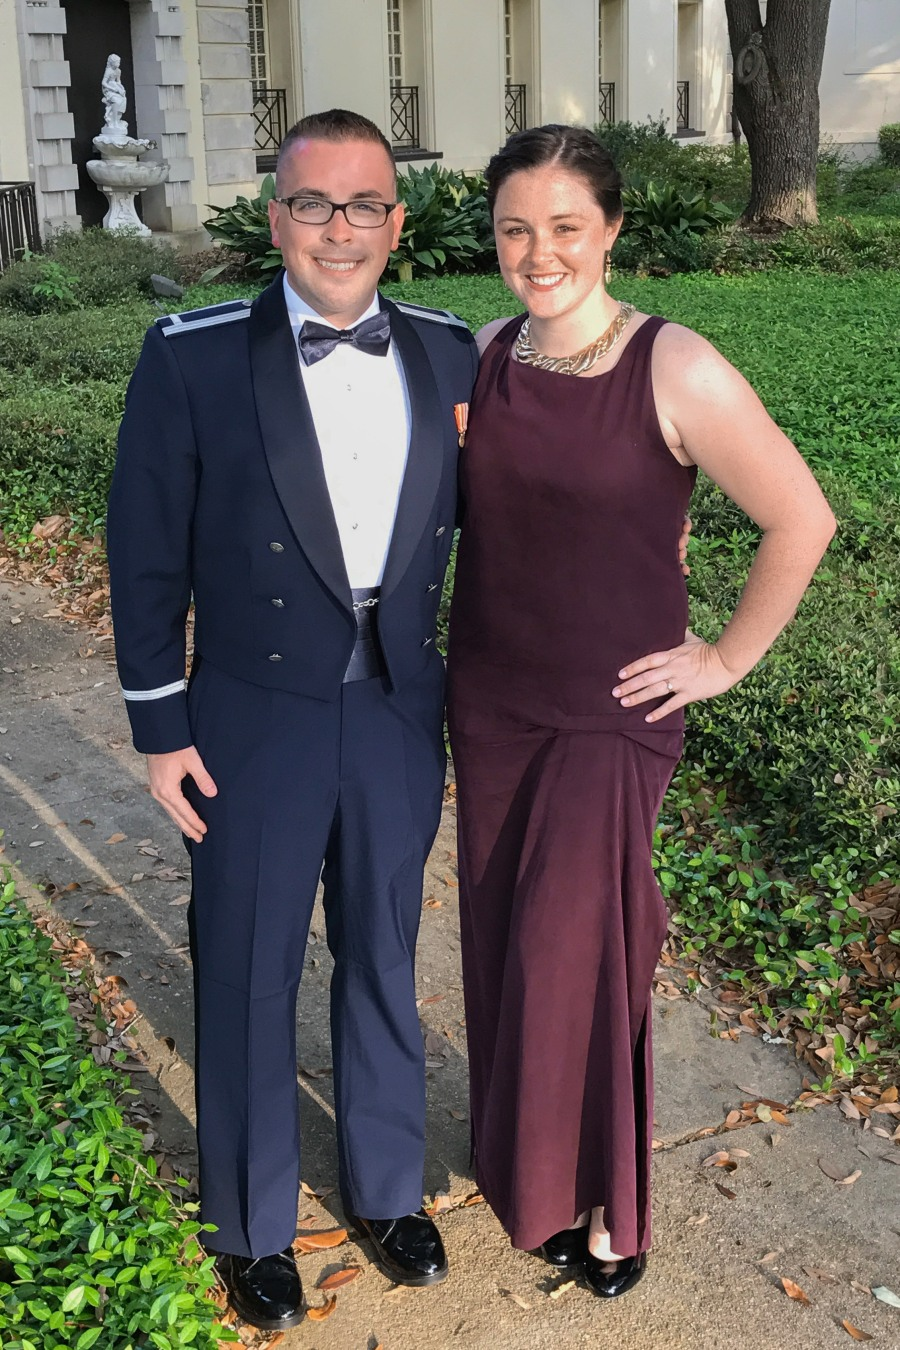 US Air Force JAG JASOC graduation festivities!